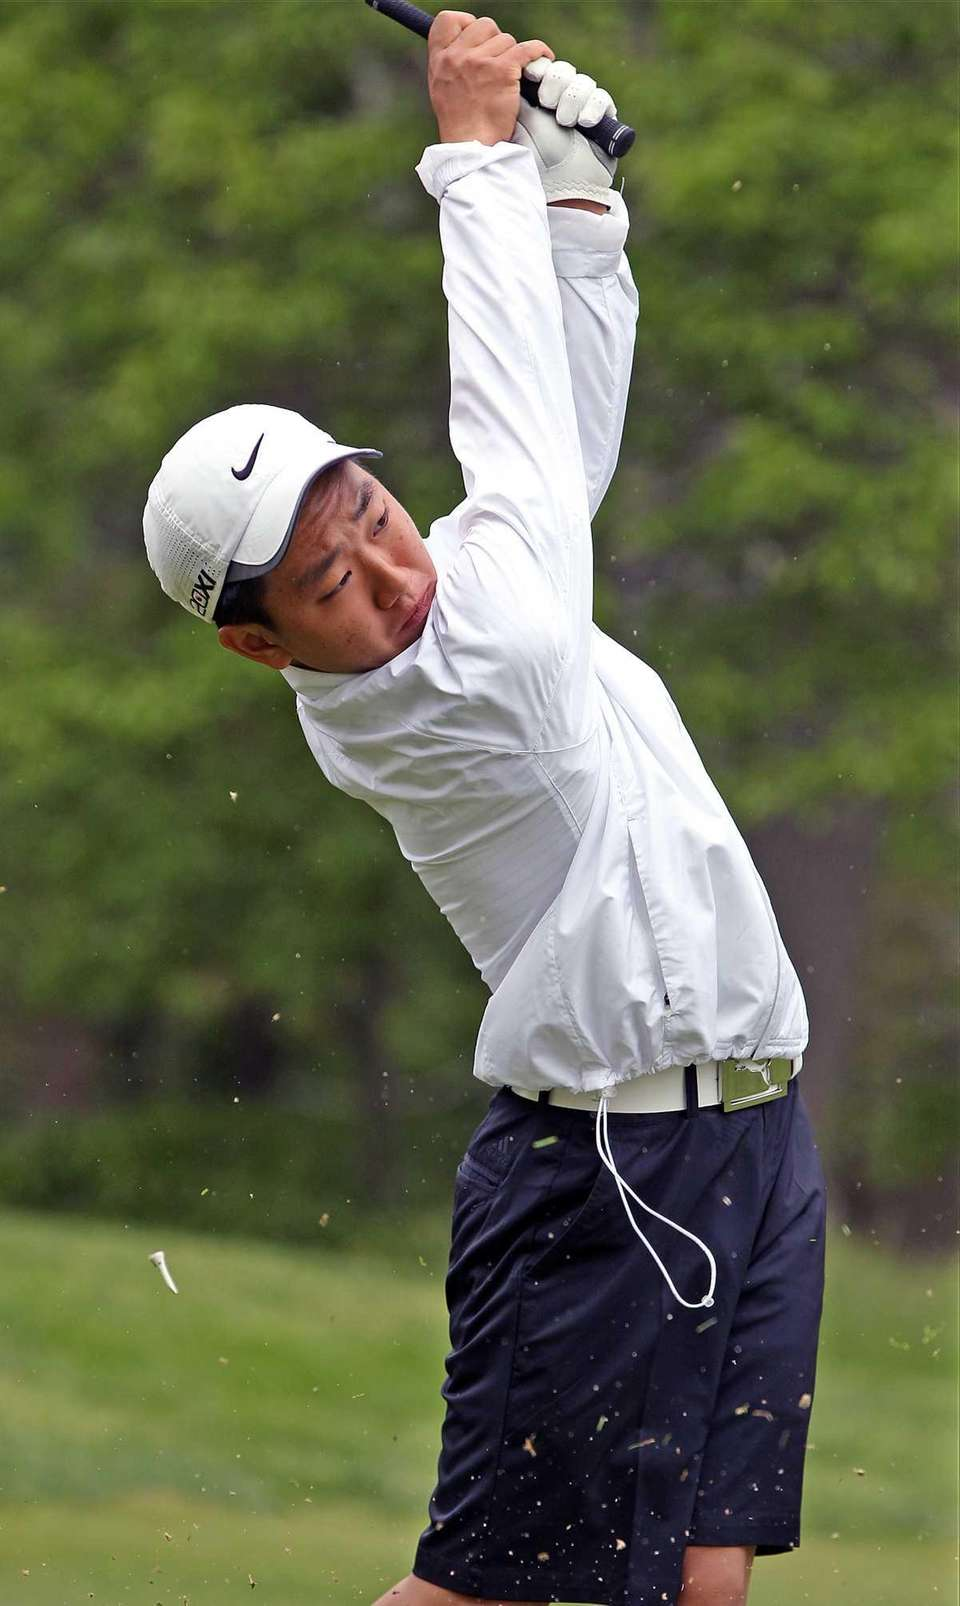 Farmingdale - May 22, 2013: Chris Yeom from